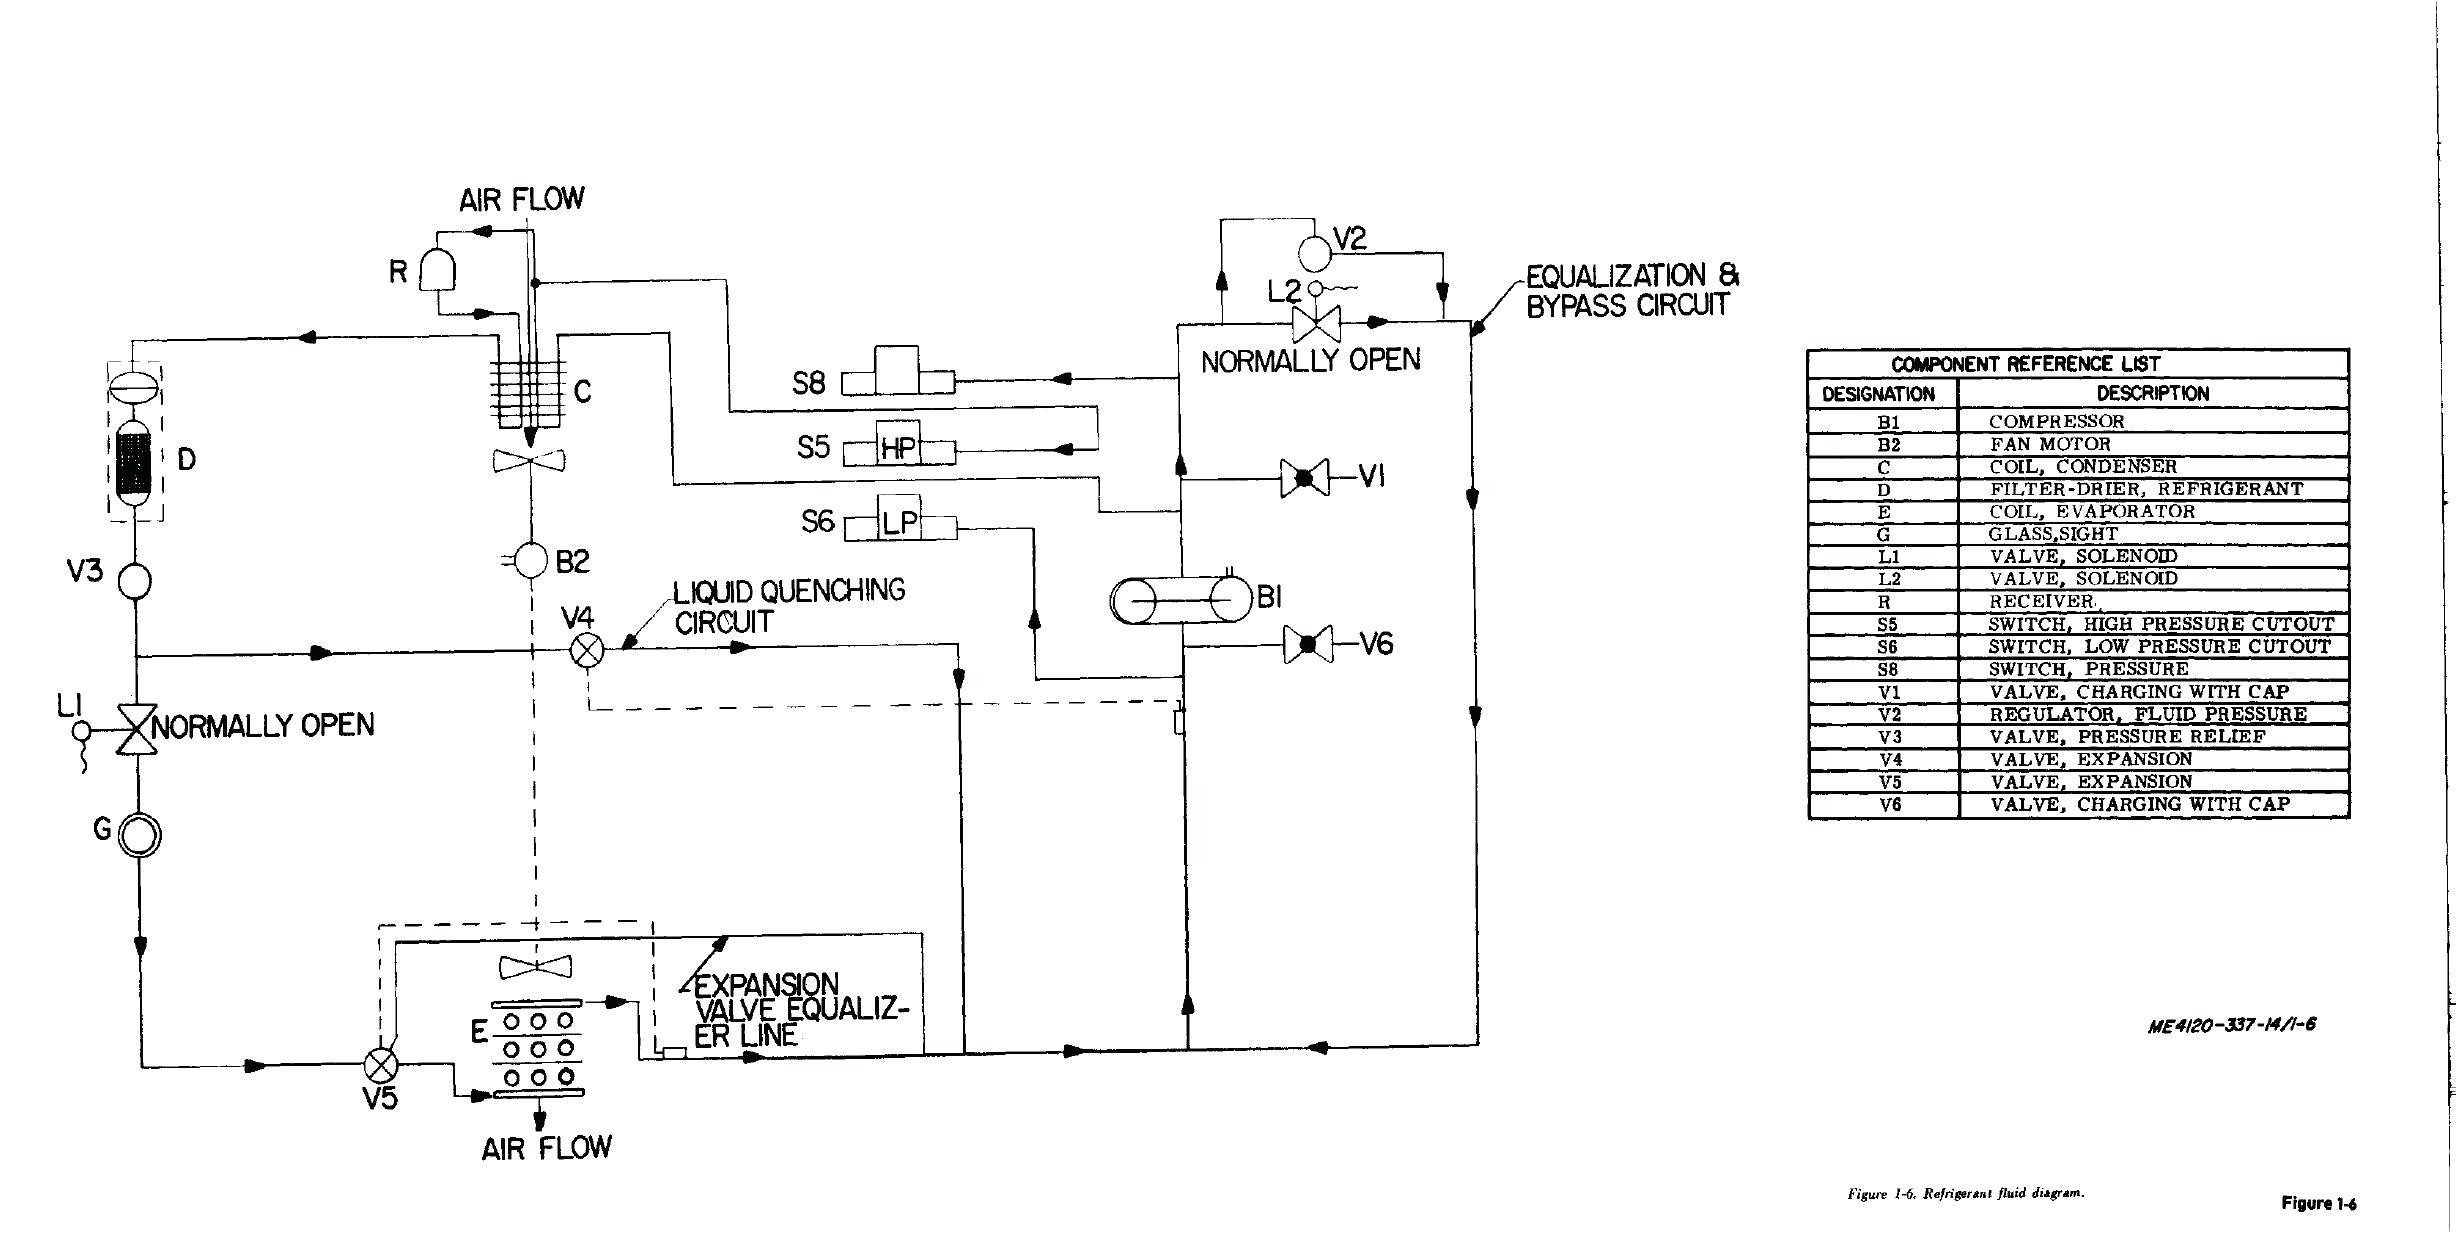 Diagram Of Auto Ac System Split Air Conditioner Wiring Diagram Pdf Central White Simple Of Diagram Of Auto Ac System